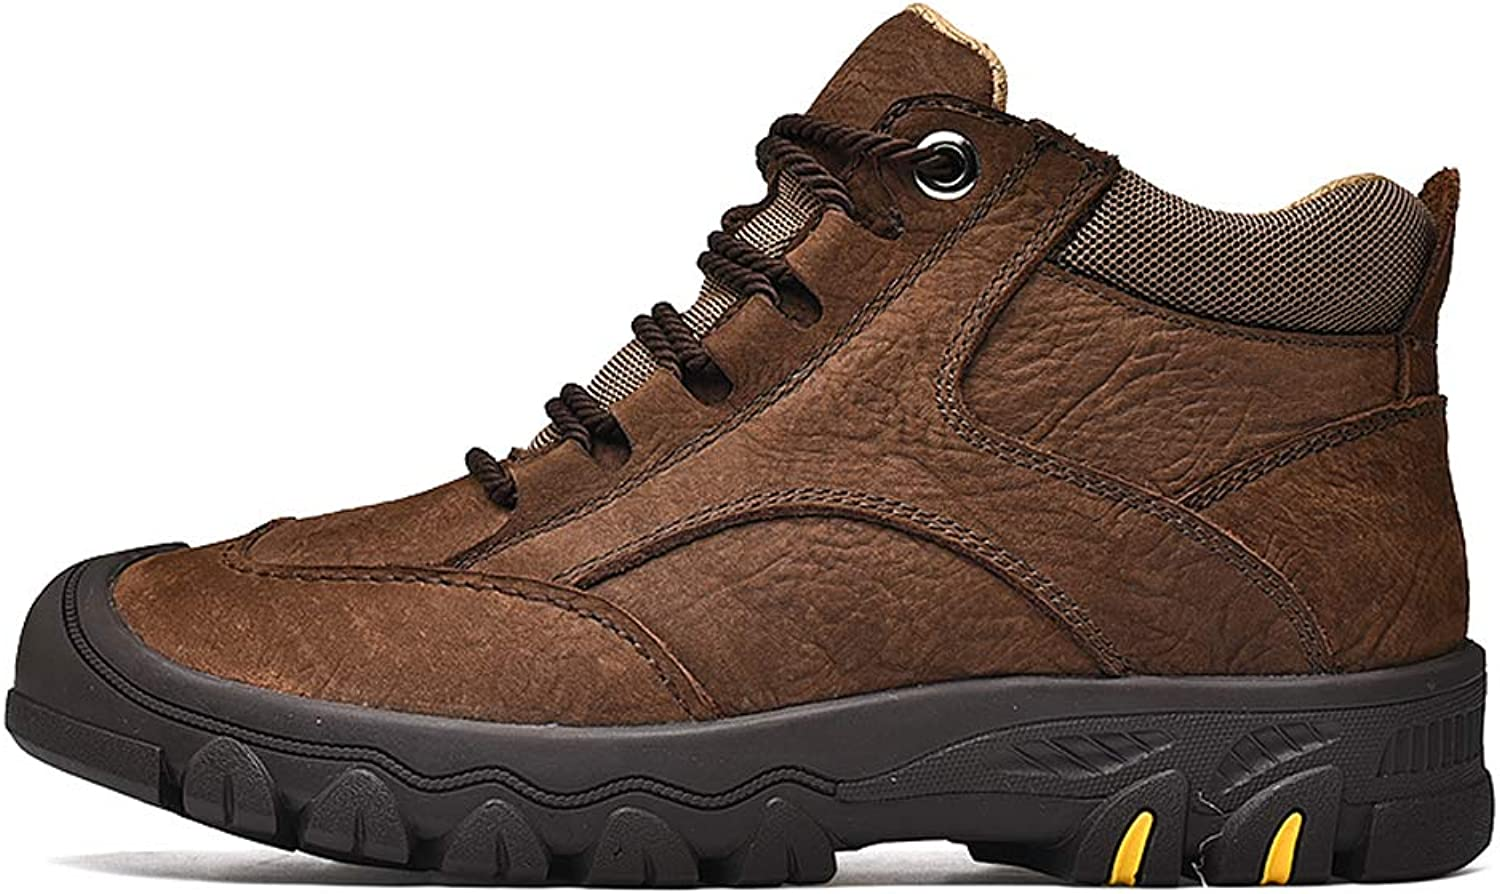 Men's Winter Plus Velvet Warm Leather Warm Outdoor Sports Waterproof Non-Slip Hiking shoes